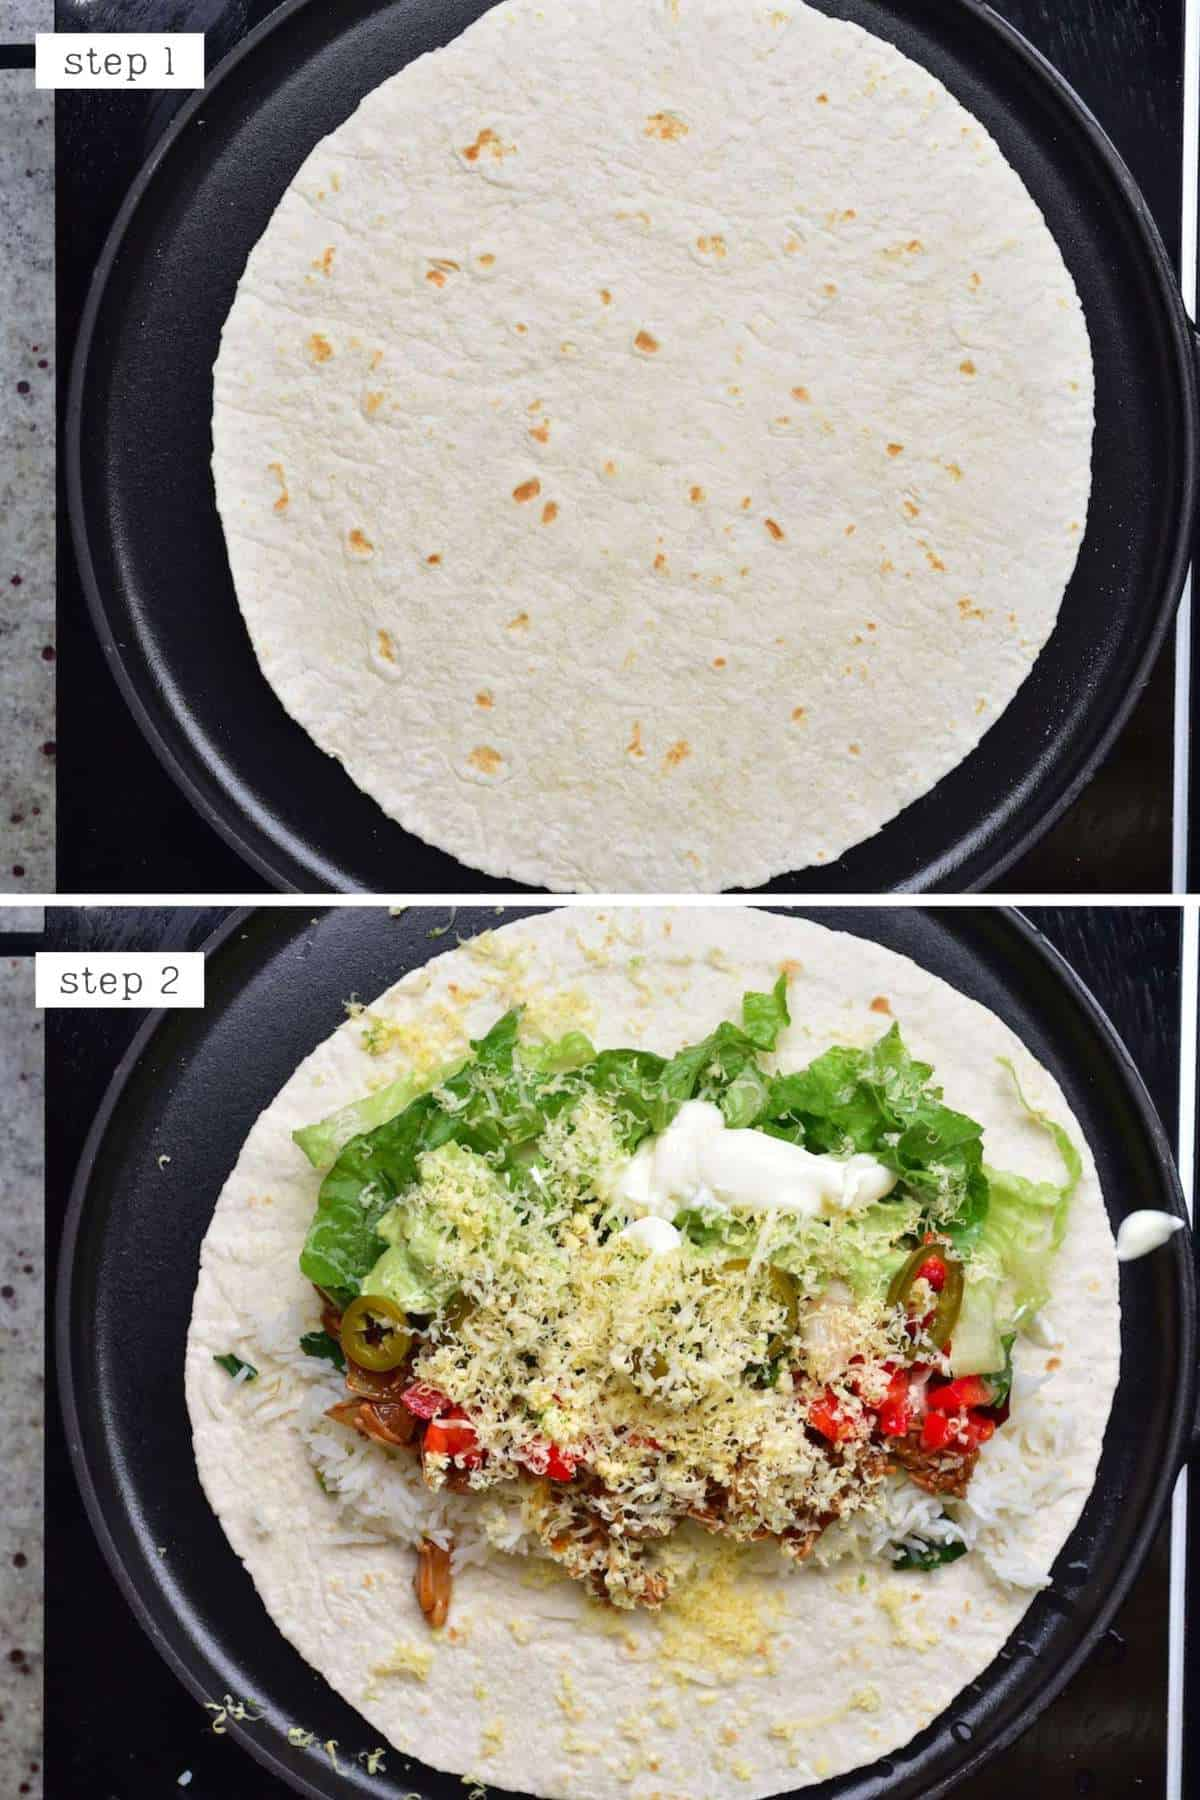 Steps for making a burrito